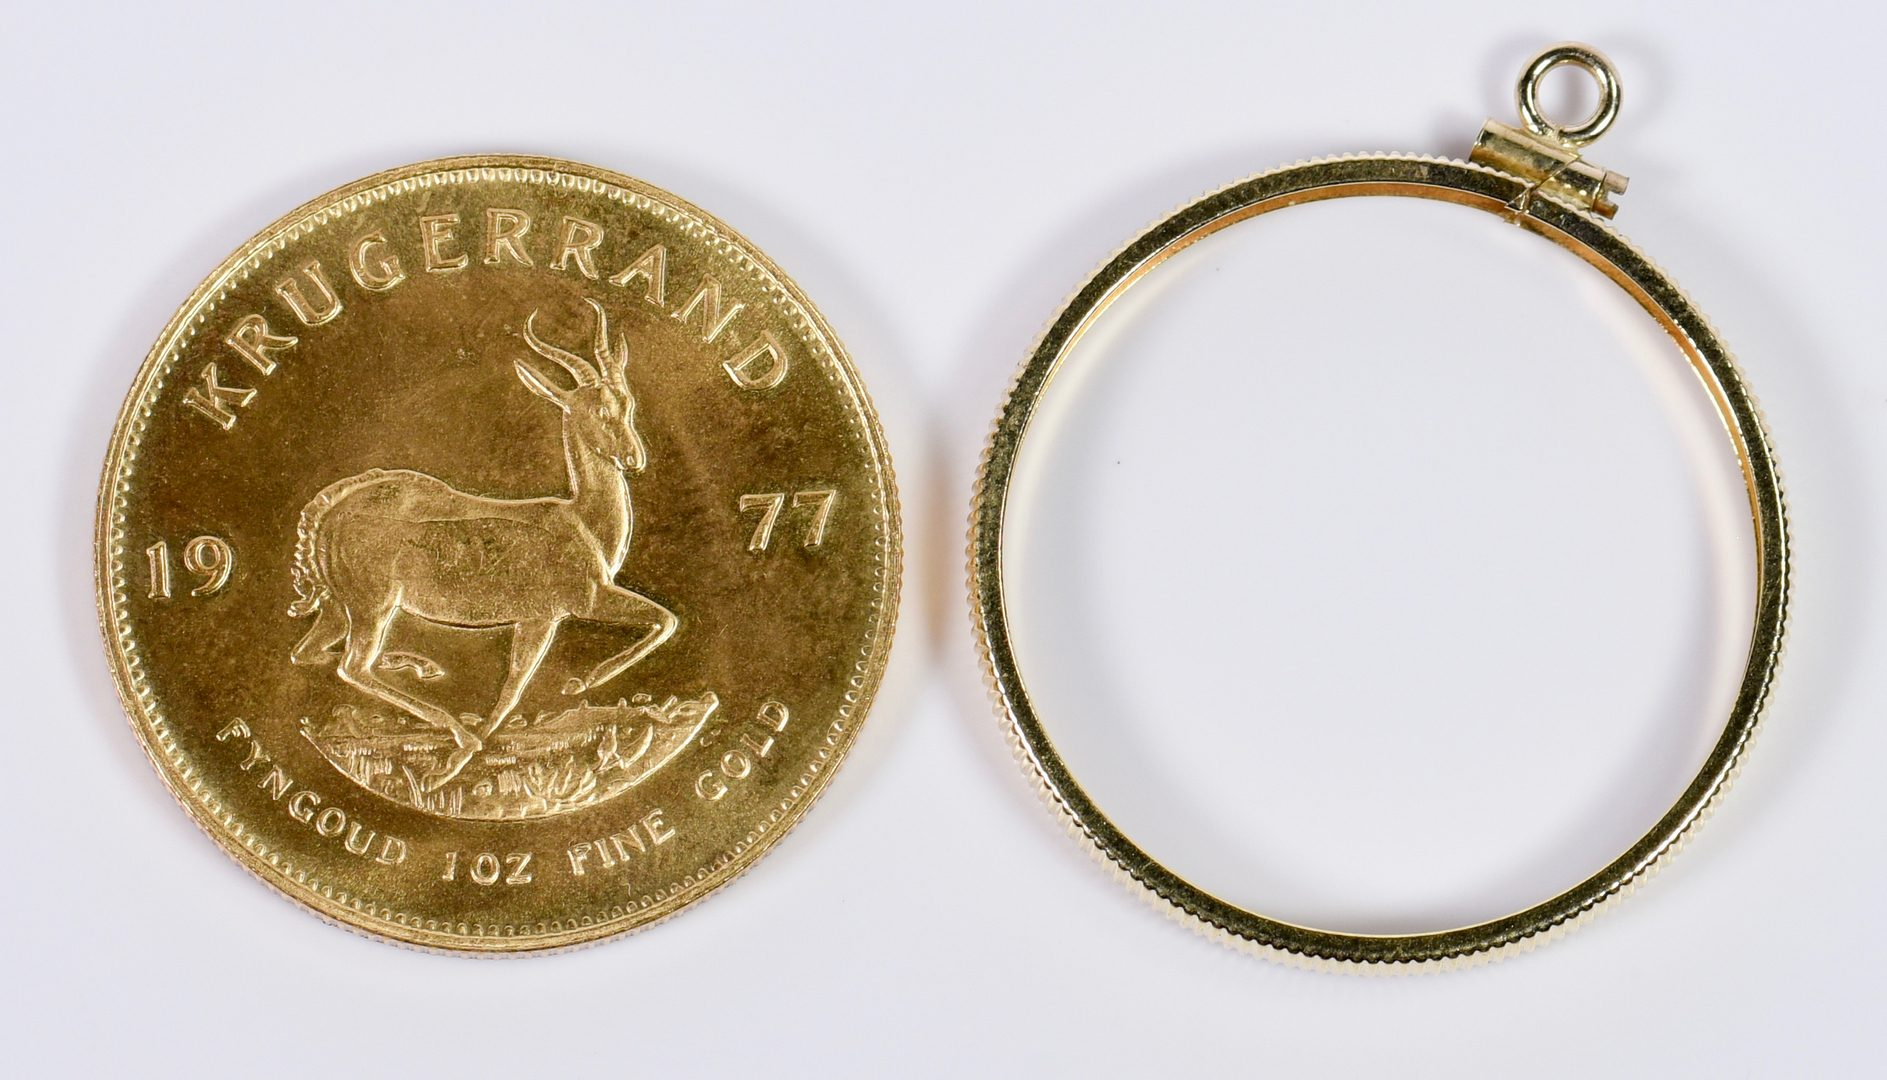 Lot 7: 1977 Krugerrand 1 oz Fine gold coin